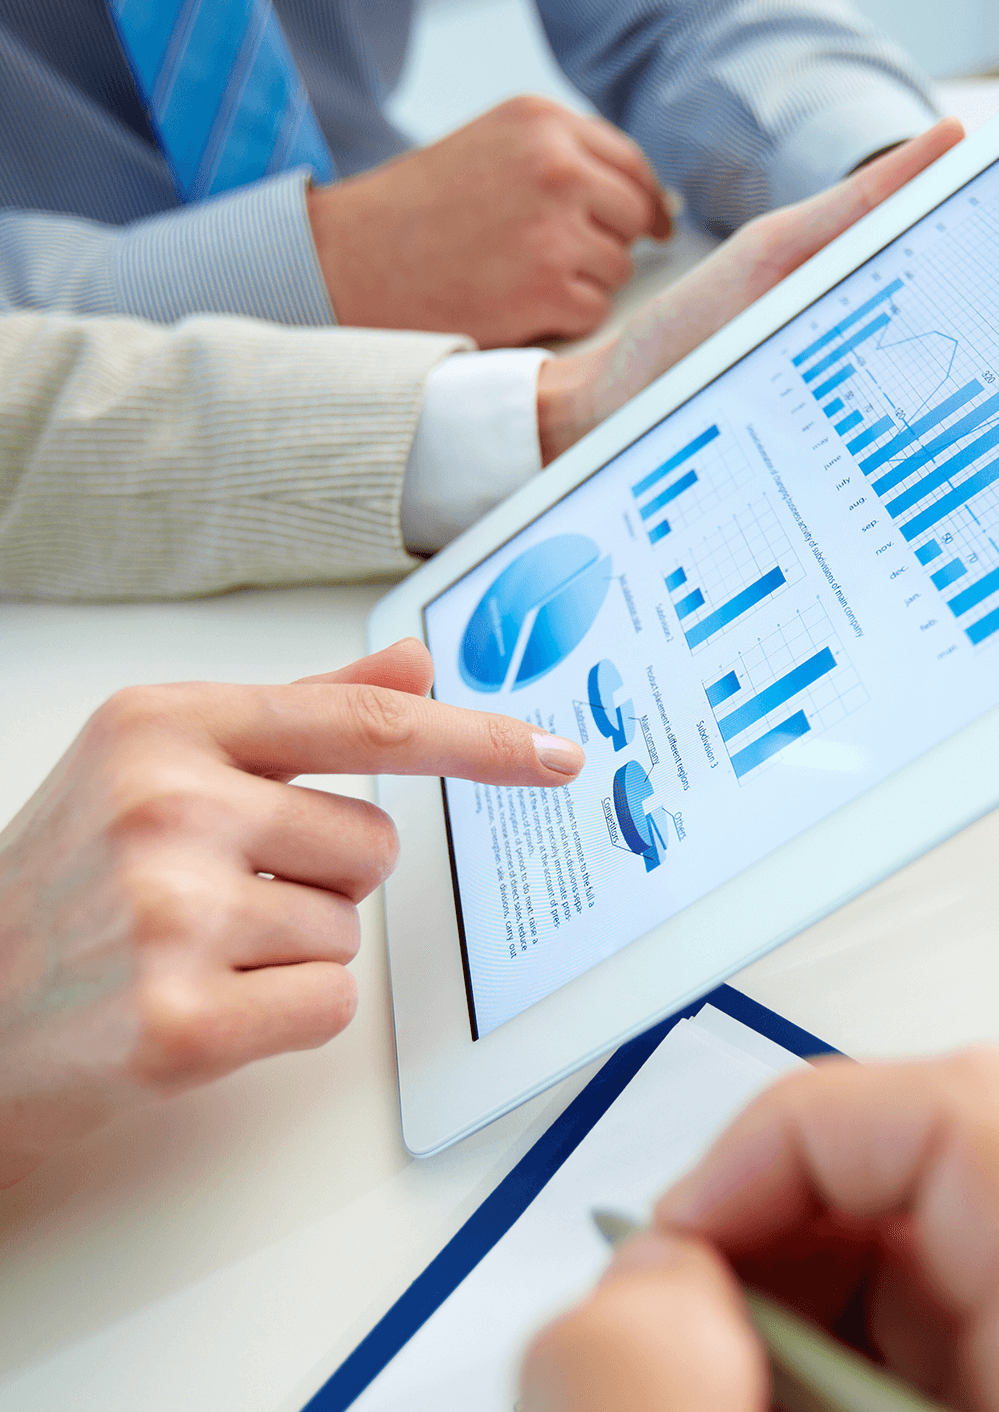 Group of accountants reviewing business plan on tablet